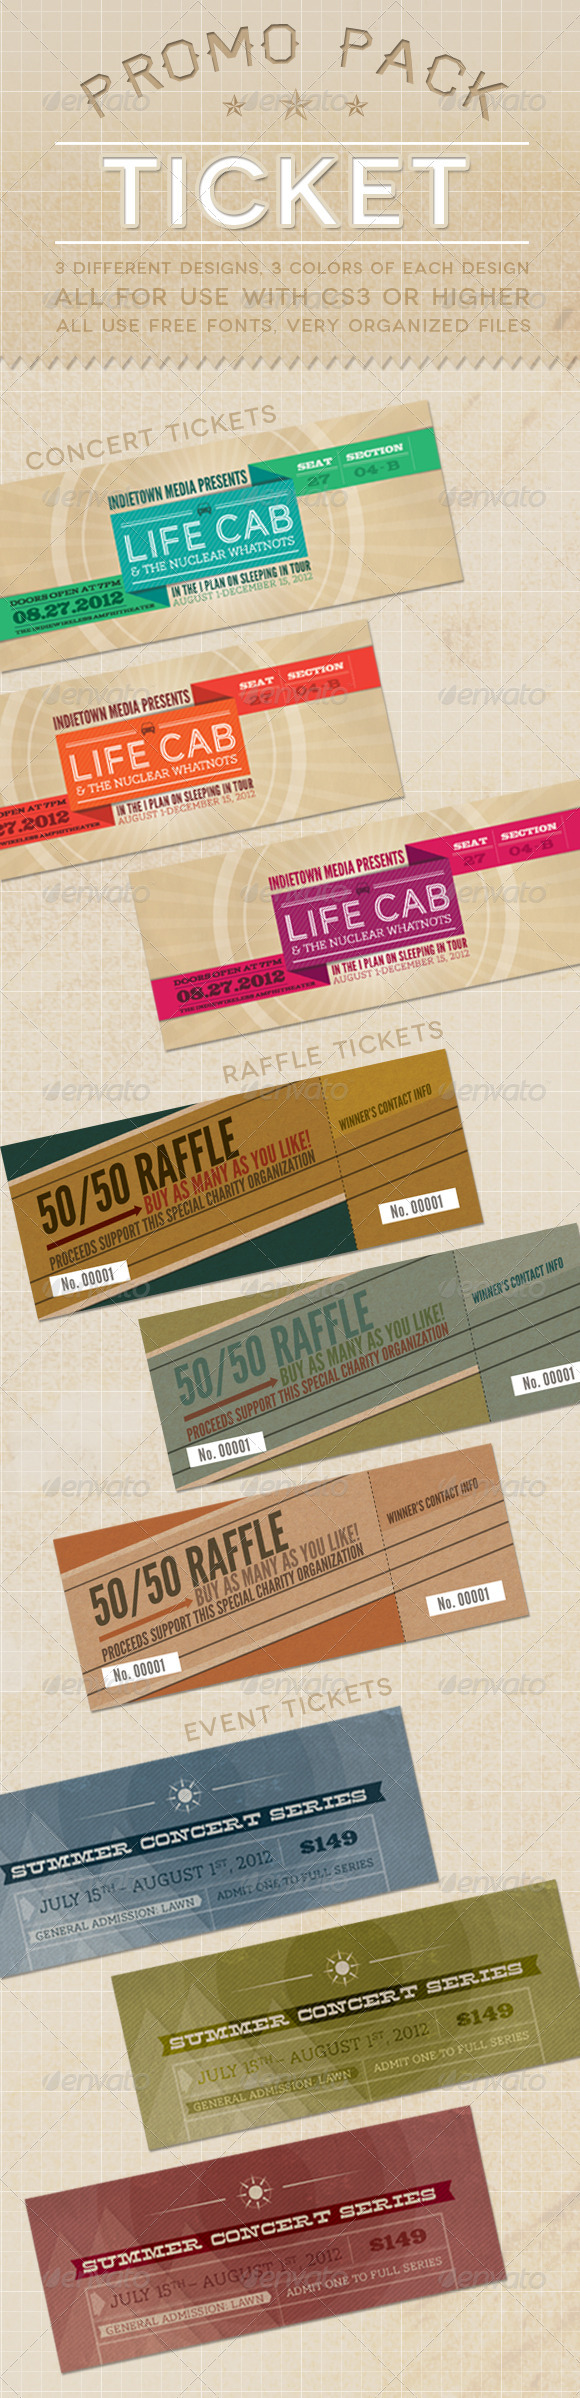 GraphicRiver Ticket Promo Pack 2390676